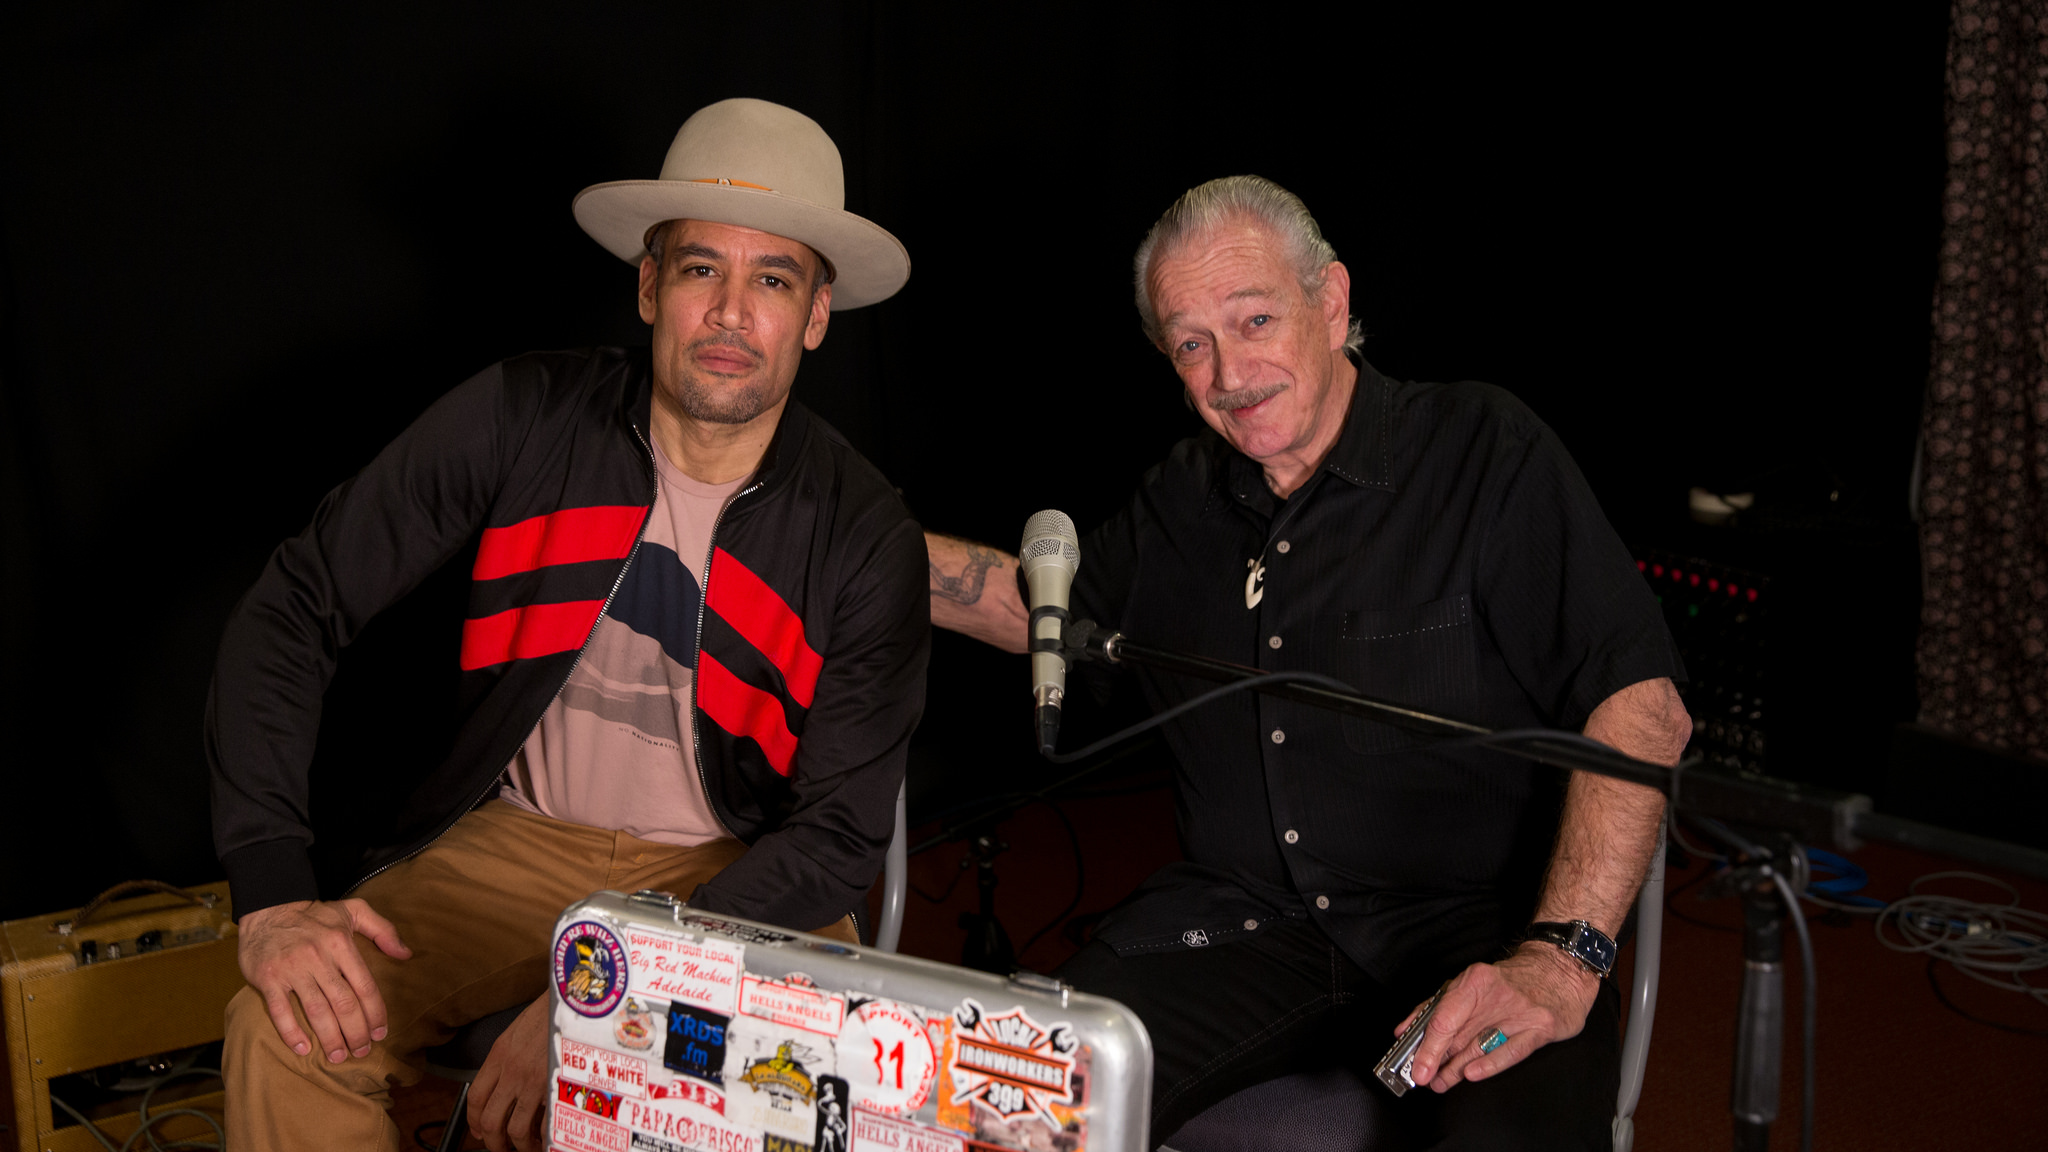 Ben Harper and Charlie Musselwhite at WFUV